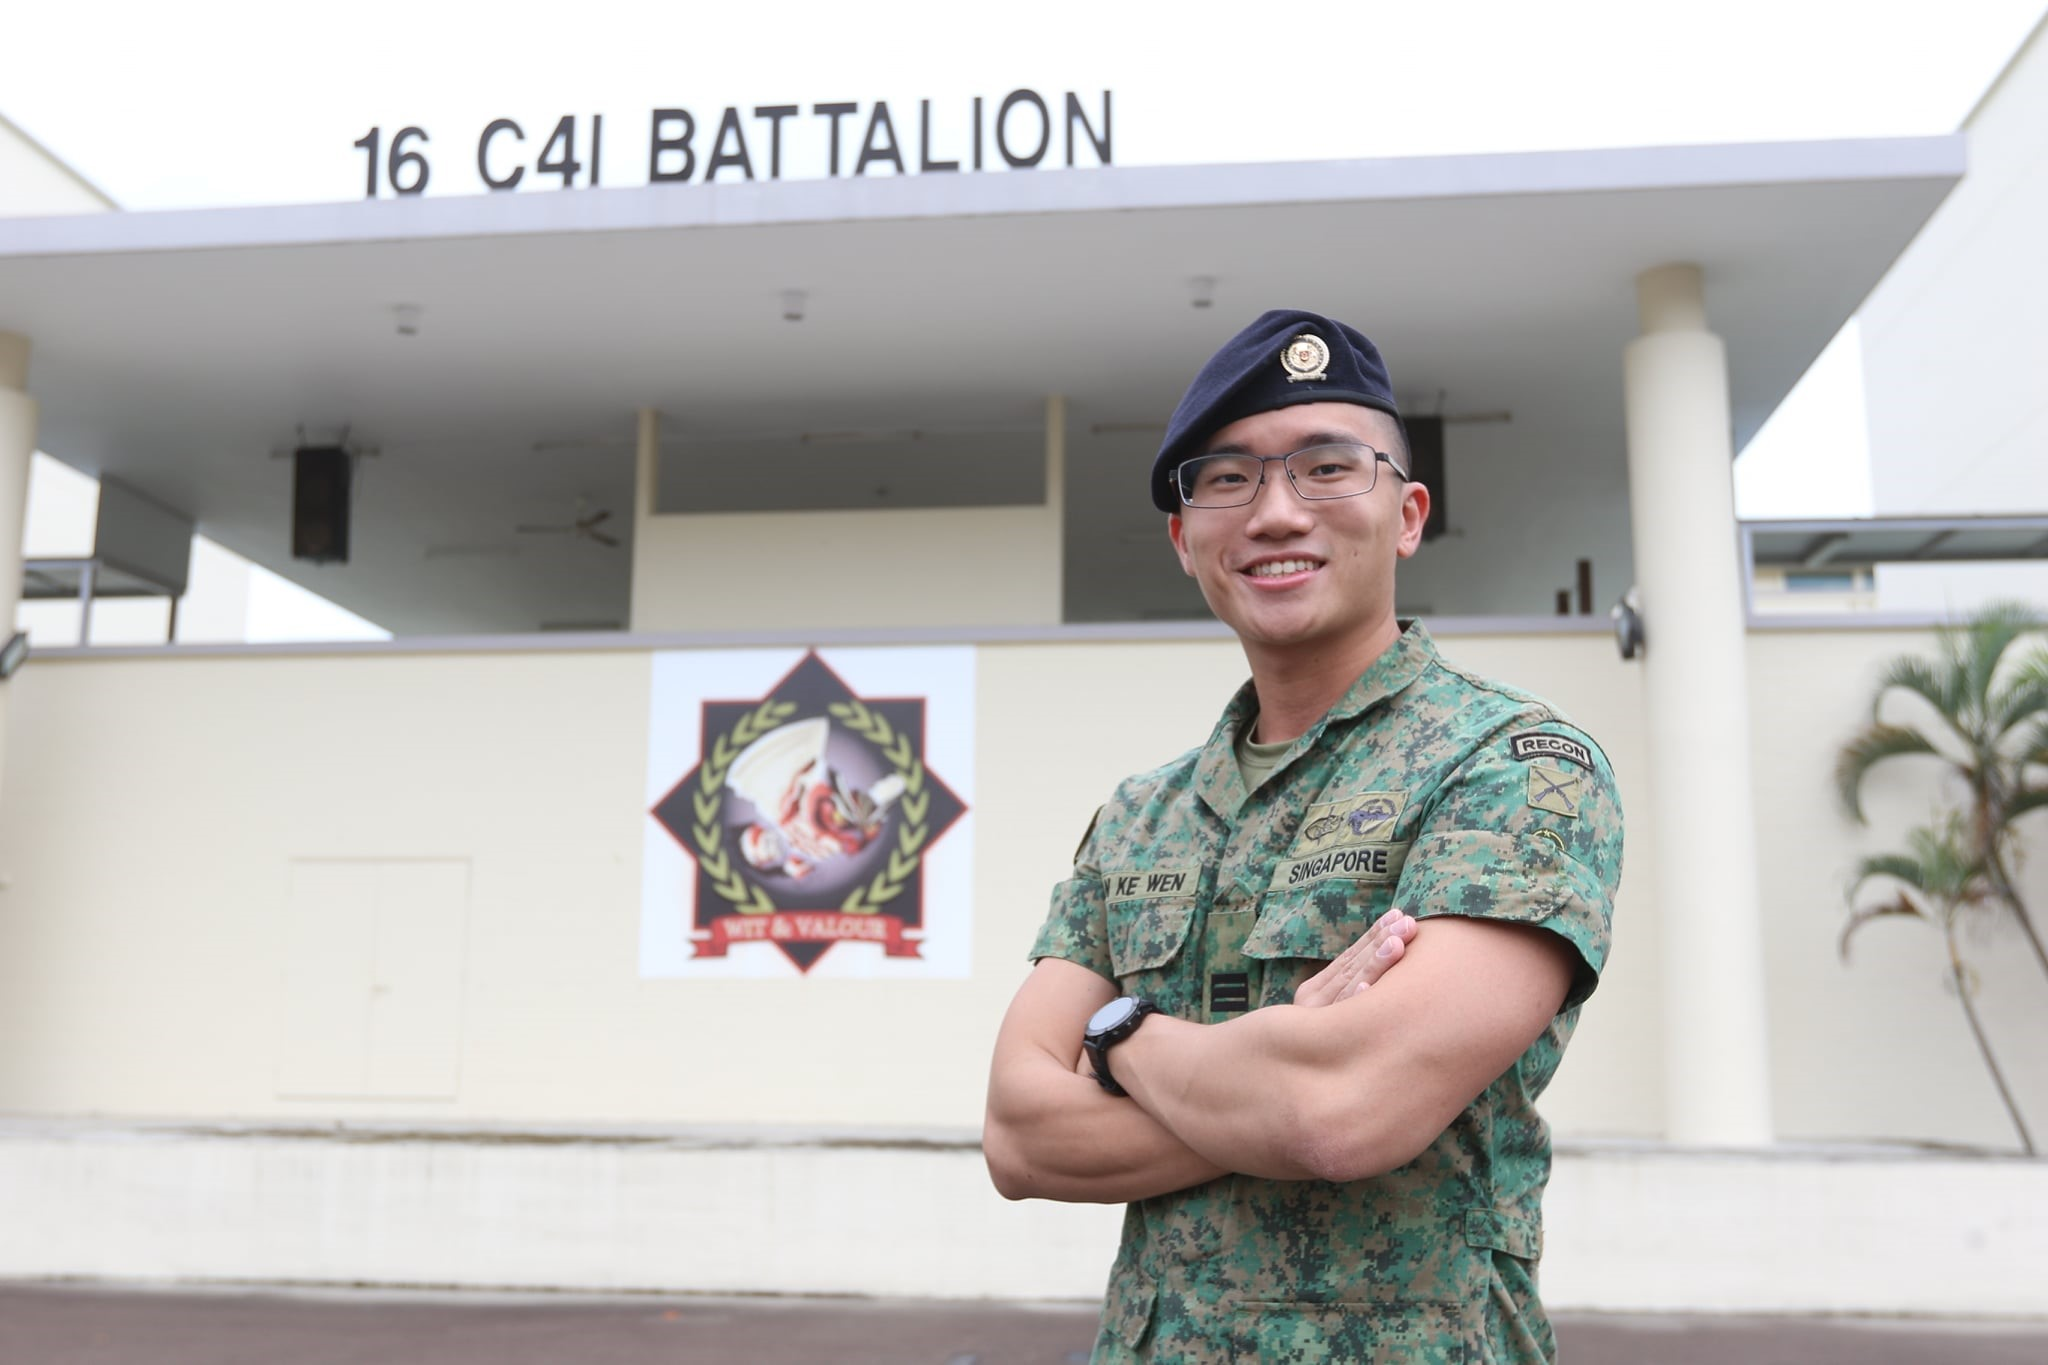 CPT Tan Ke Wen was inspired to join the Army by his brother who had signed on before him.